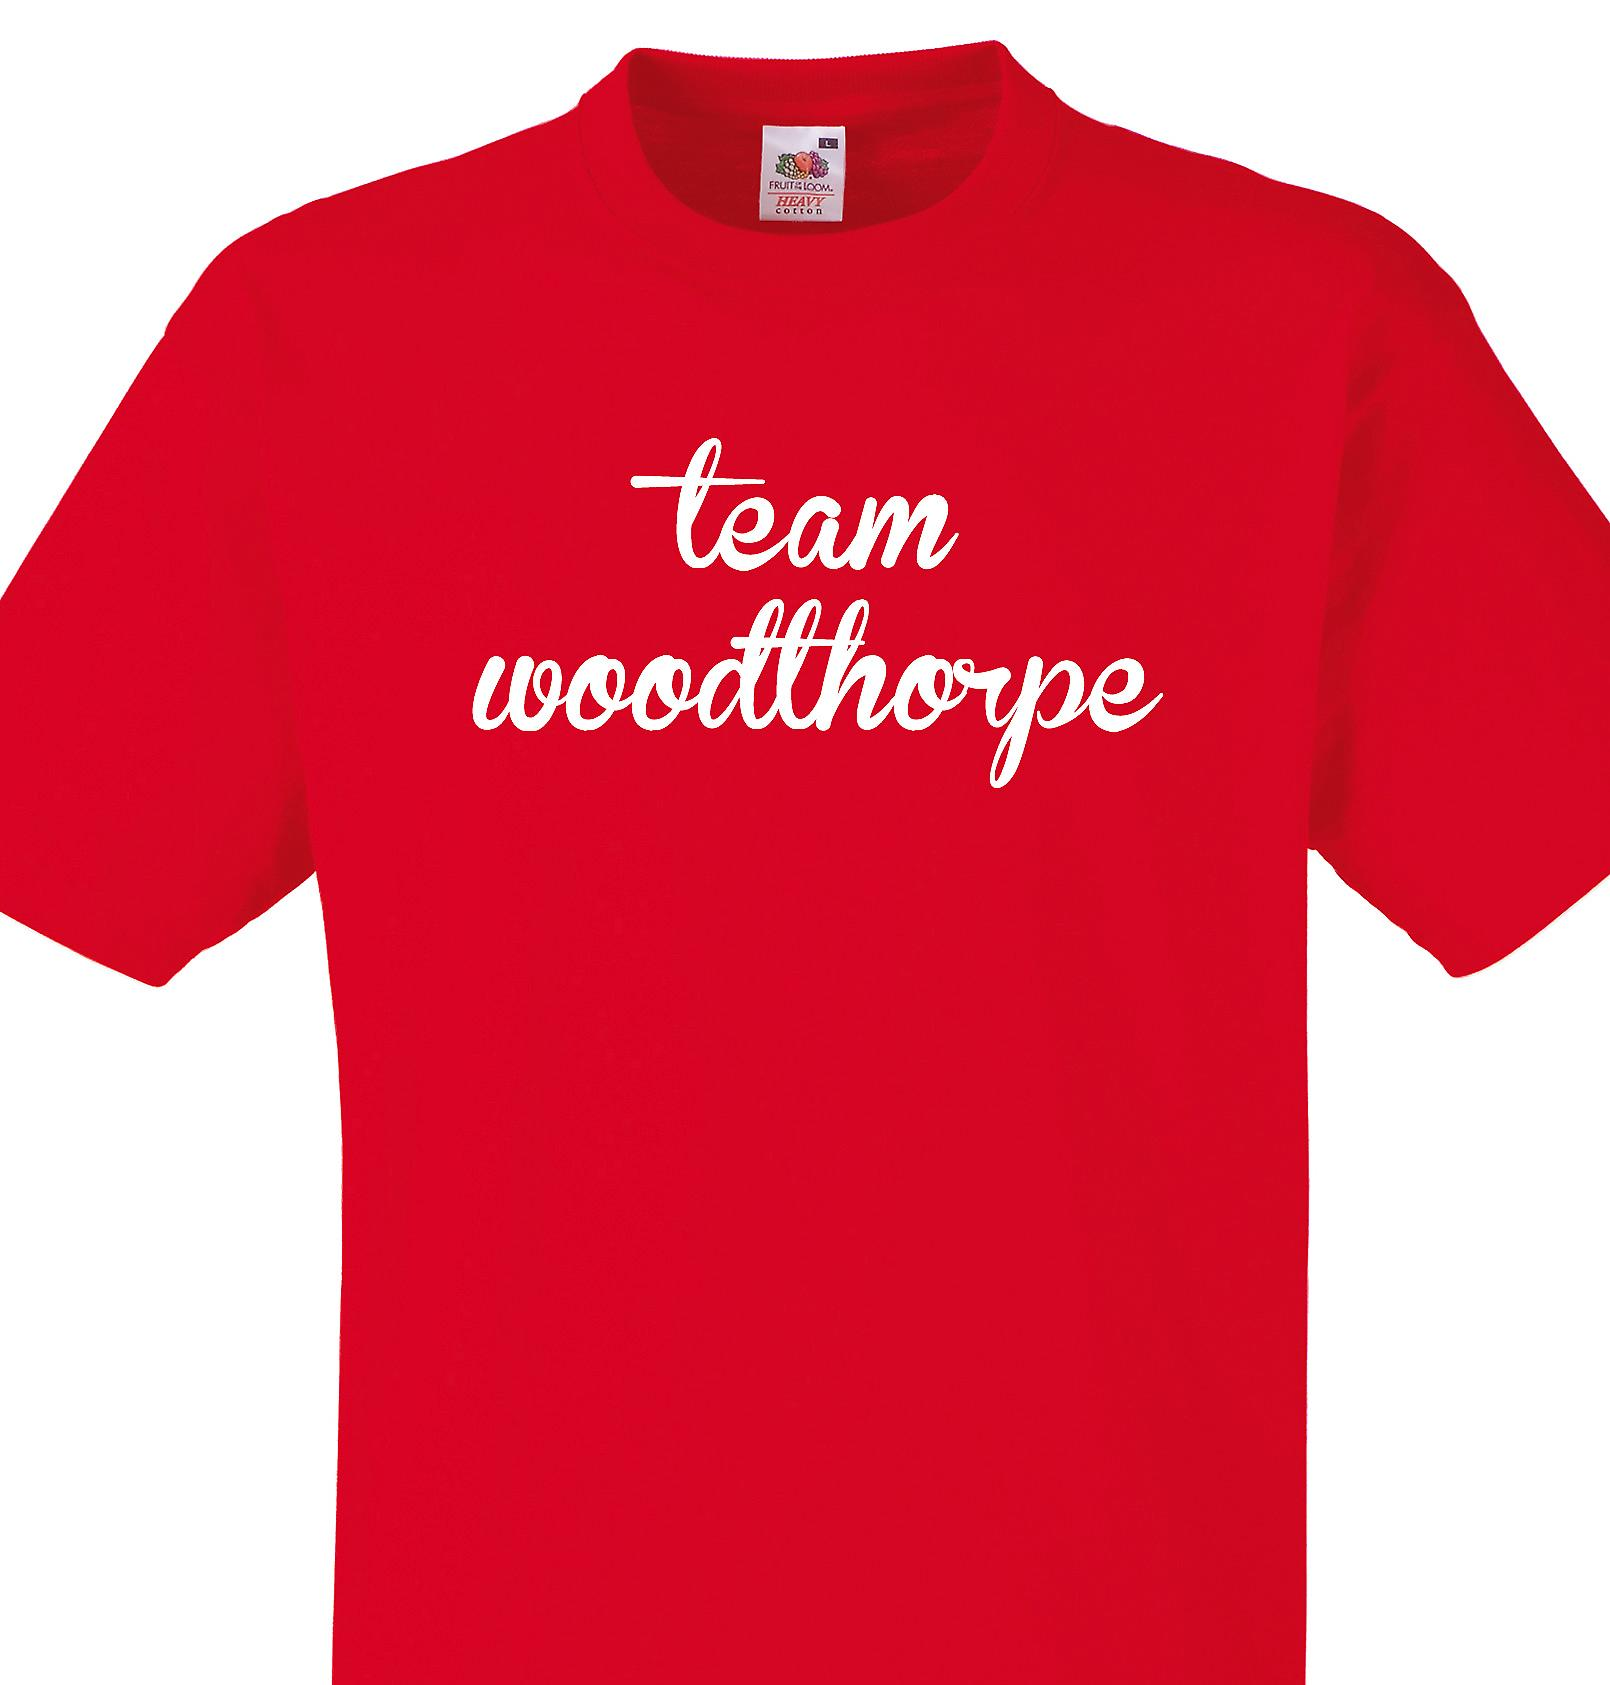 Team Woodthorpe Red T shirt